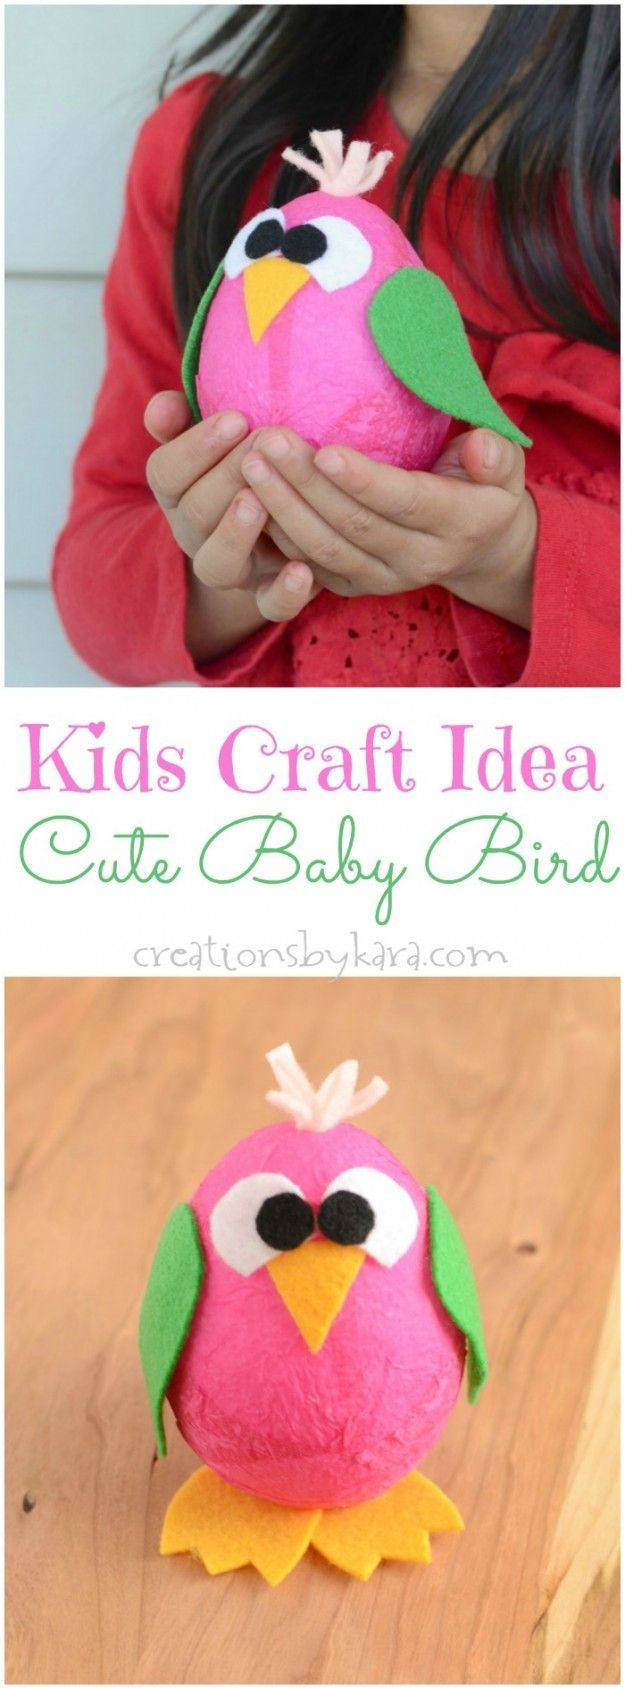 Cute Craft Ideas For Kids Part - 16: Easy Kids Craft Idea- Cute Baby Bird - Keep The Kids Busy When The Weather